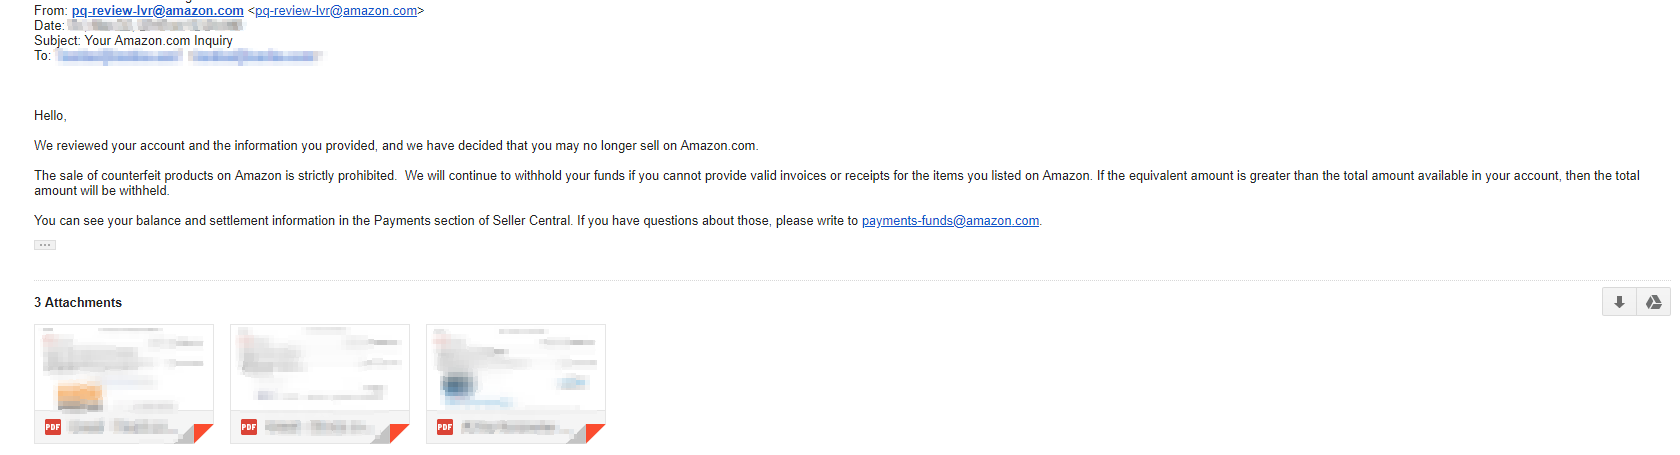 Email from Amazon informing me that I may no longer sell on Amazon.com after sending my first appeal - worst feeling ever..